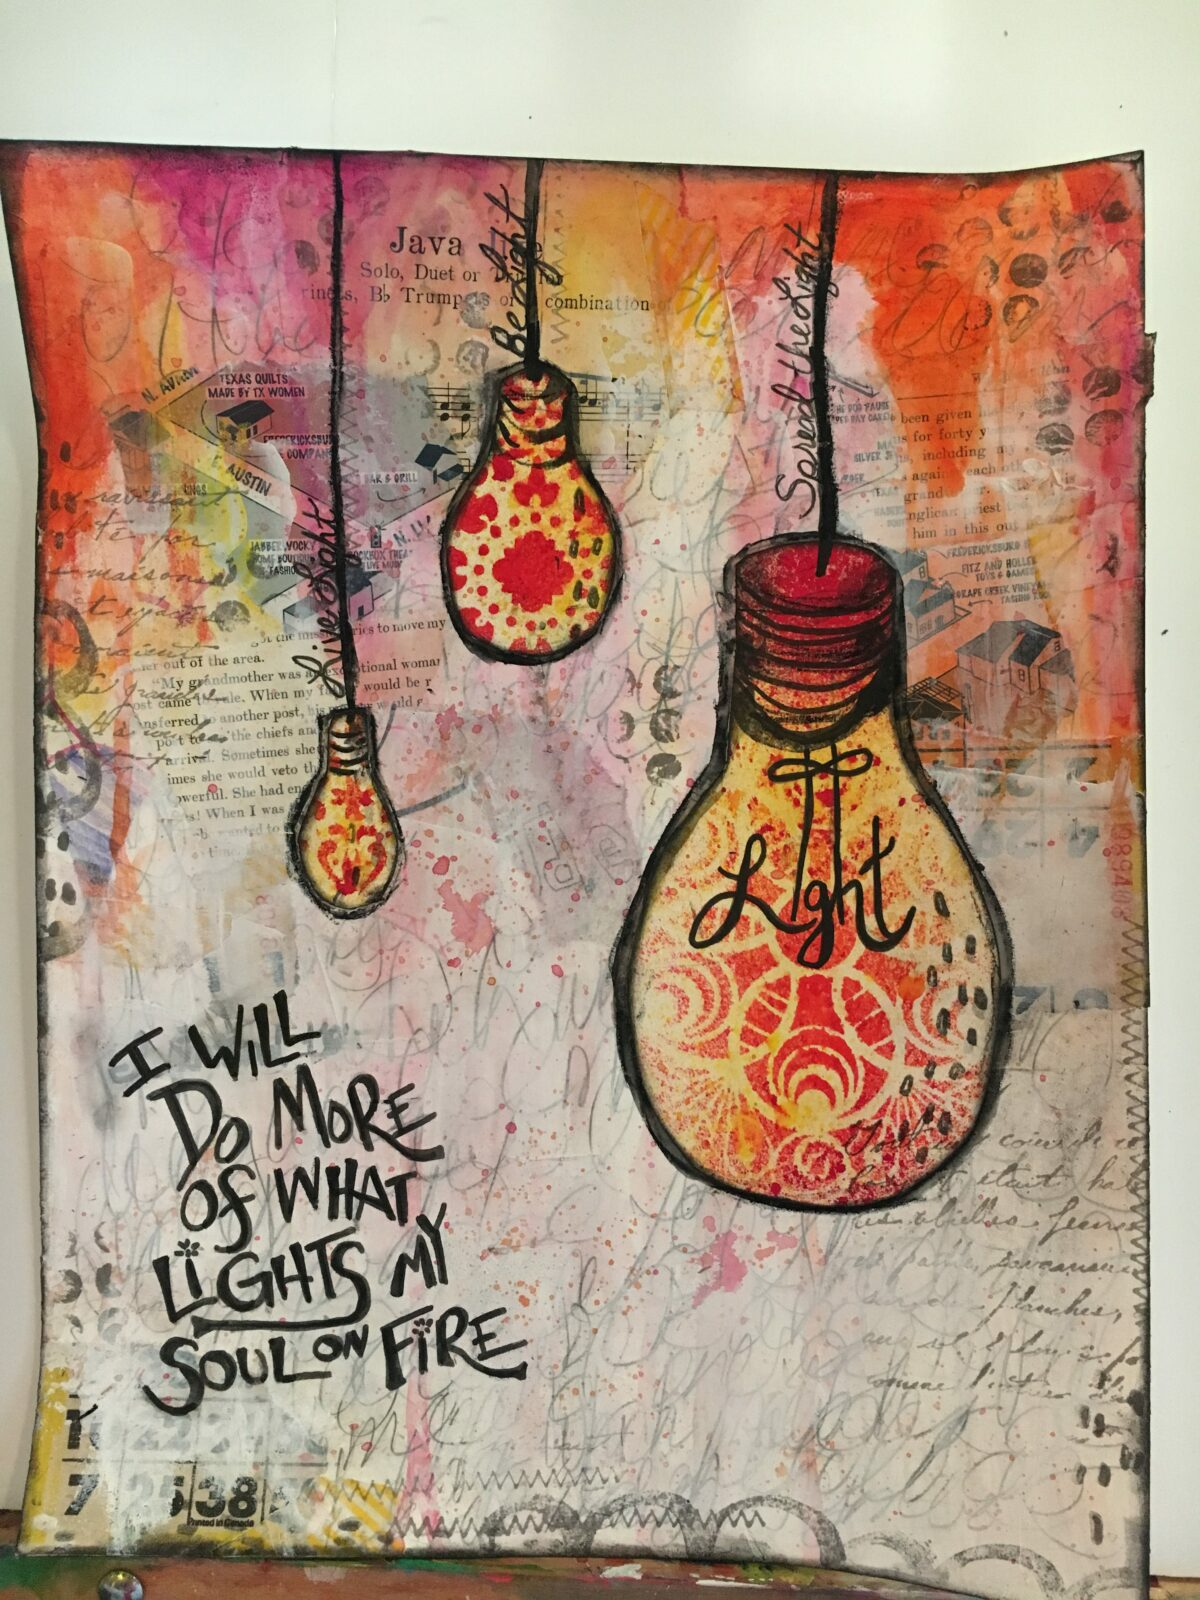 I will do more of what lights my soul on fire